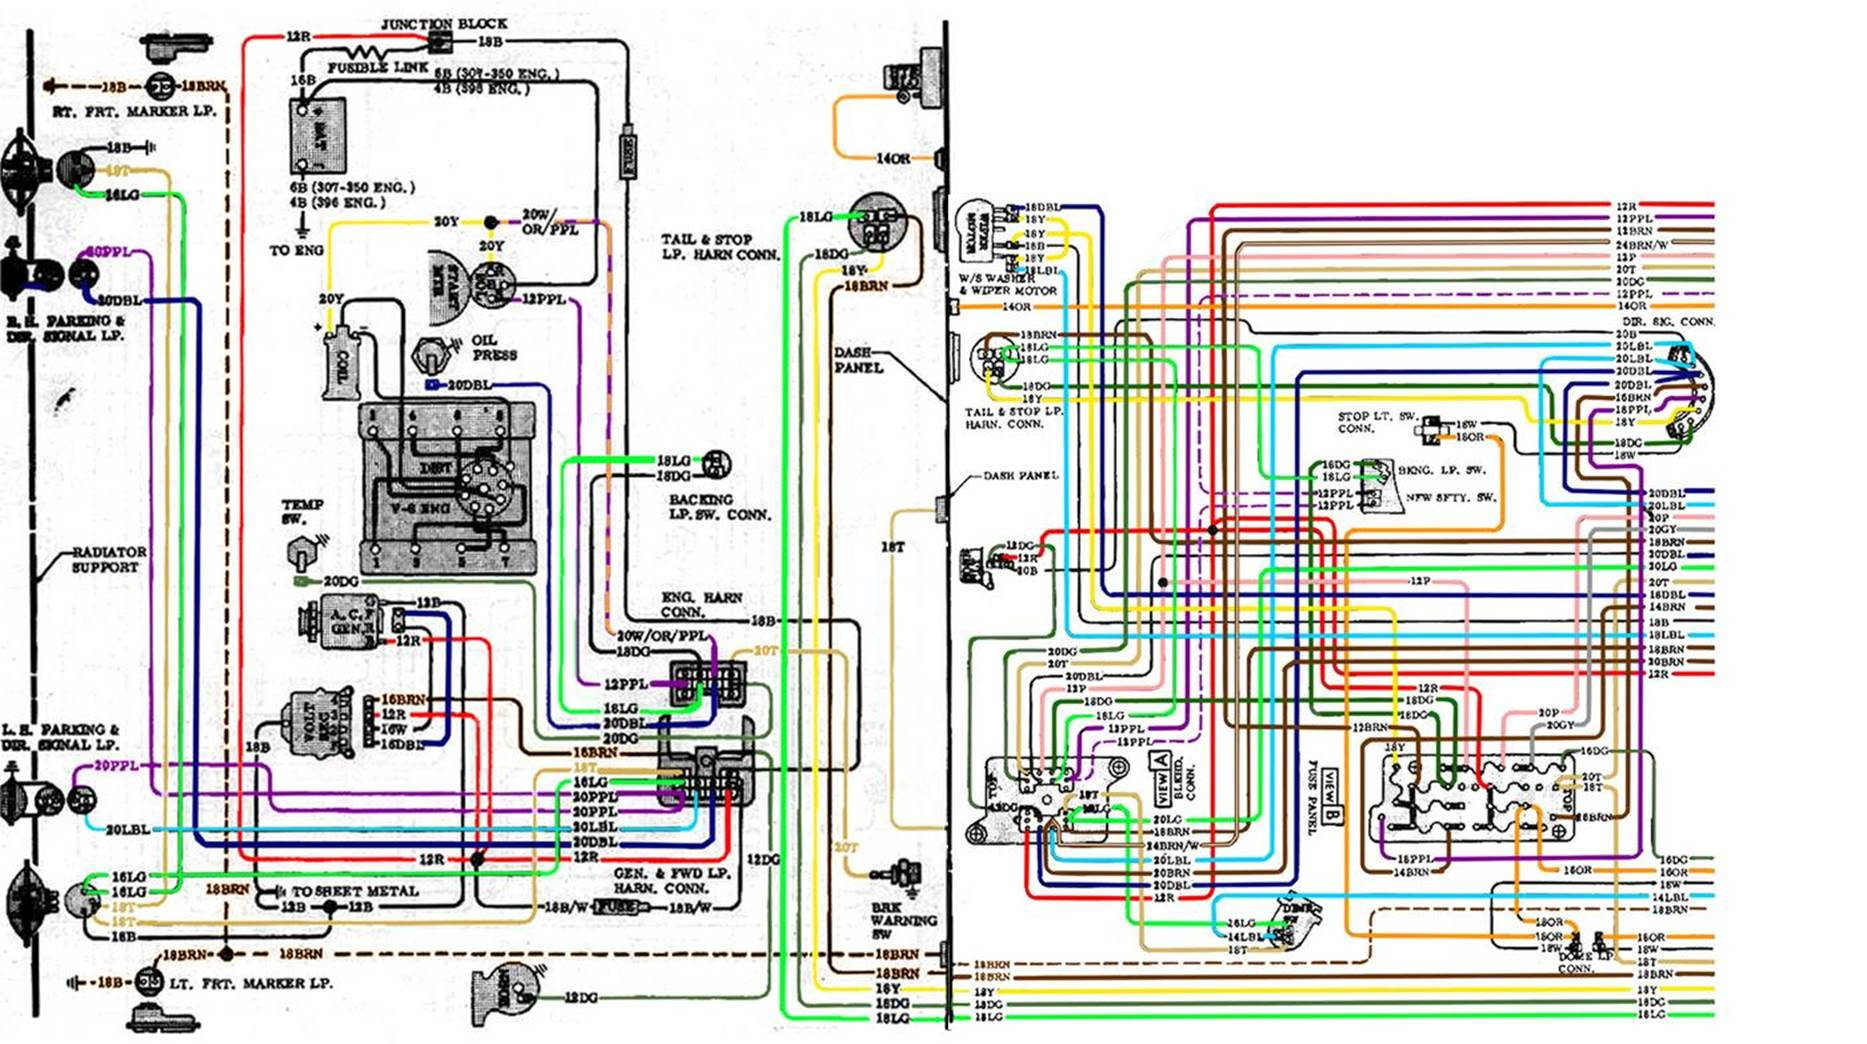 Wiring Diagram For 1969 Chevelle | Wiring Diagram on steve mcqueen lemans, porsche lemans, nissan lemans,